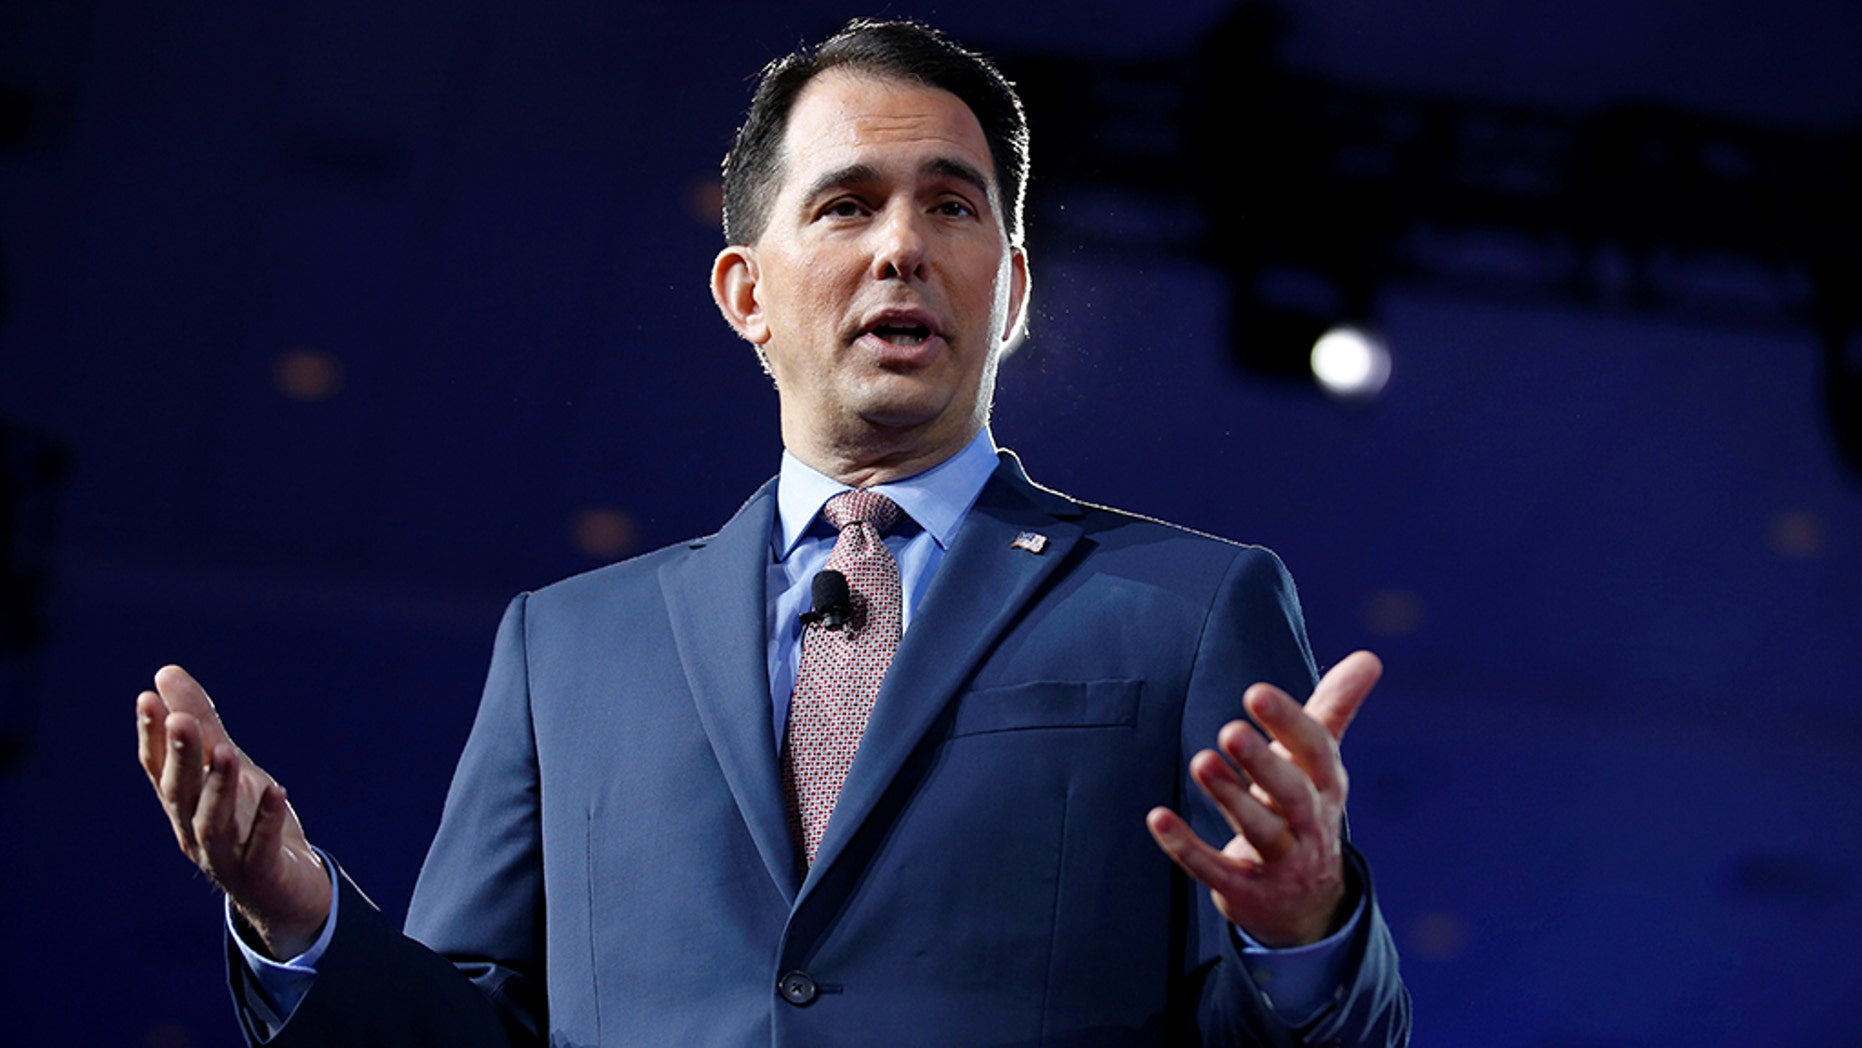 Former Wisconsin Gov. Scott Walker has a new mission that keeps him engaged in politics: advocating for a balanced budget amendment to the United States Constitution. REUTERS/Joshua Roberts